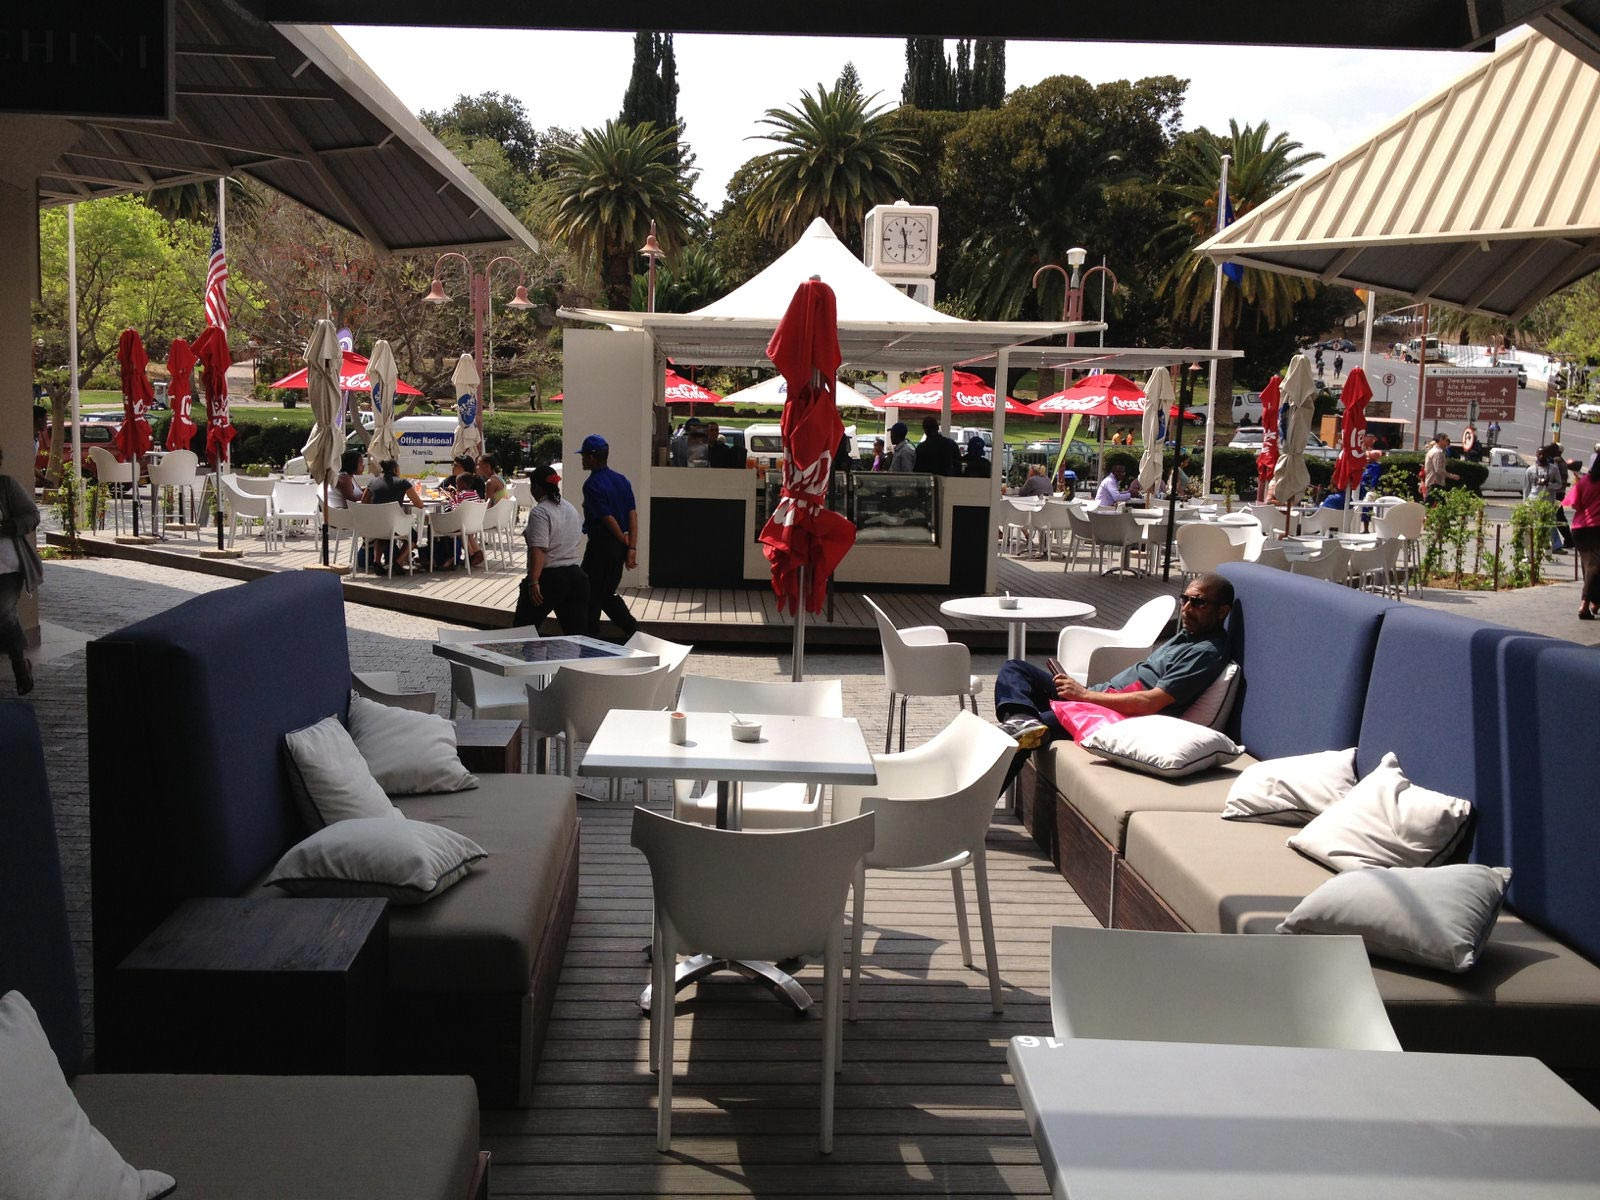 Decking with outdoor furniture and people